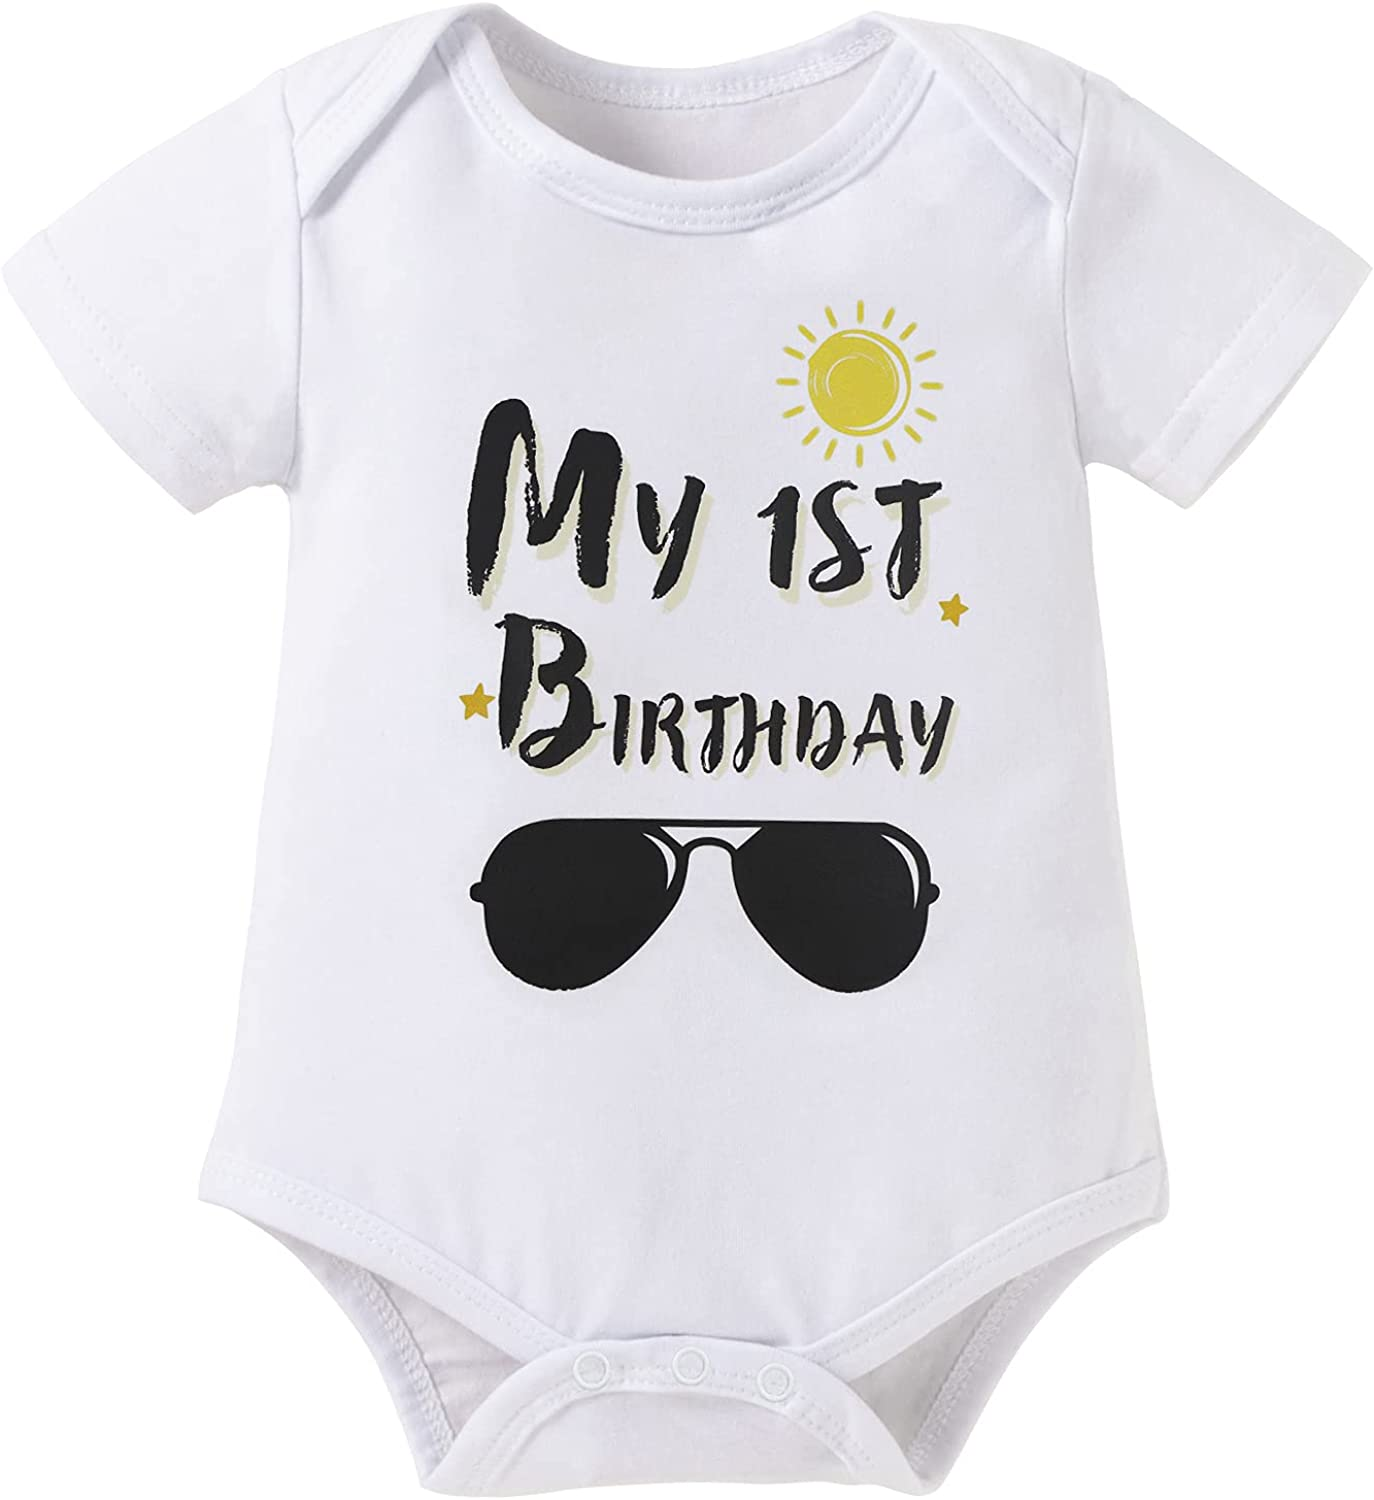 AGQT Infant Babys First Birthday Outfit Smash Cake 3PCS Short Sleeve Romper Bodysuit Size 9-18 Months